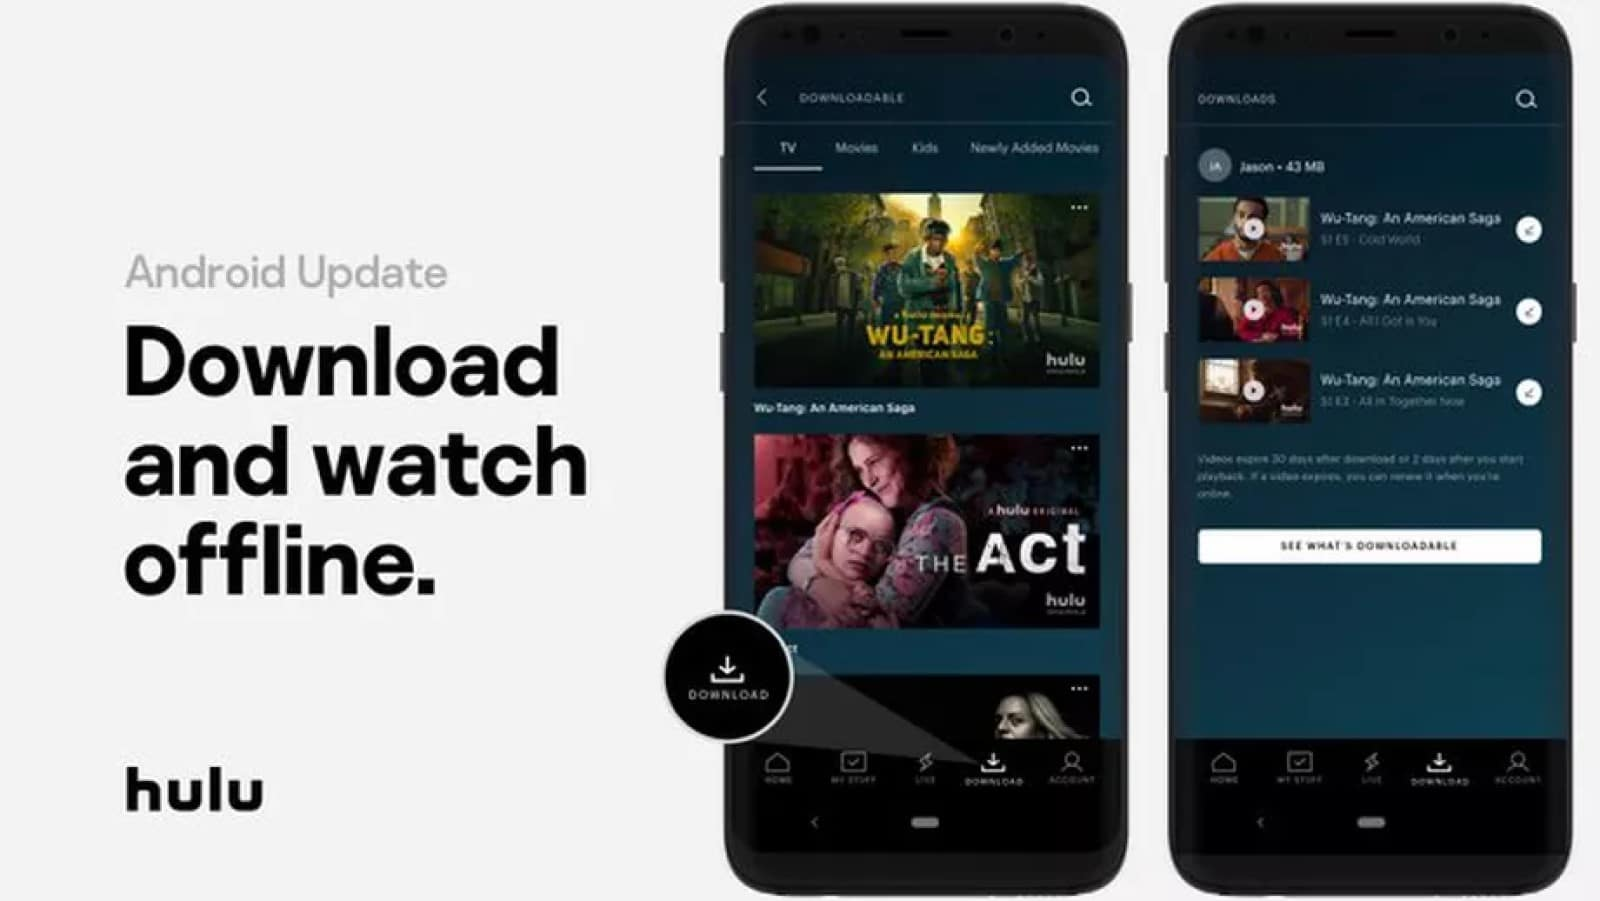 hulu advertisement showing the ability to download shows on Android for later viewing